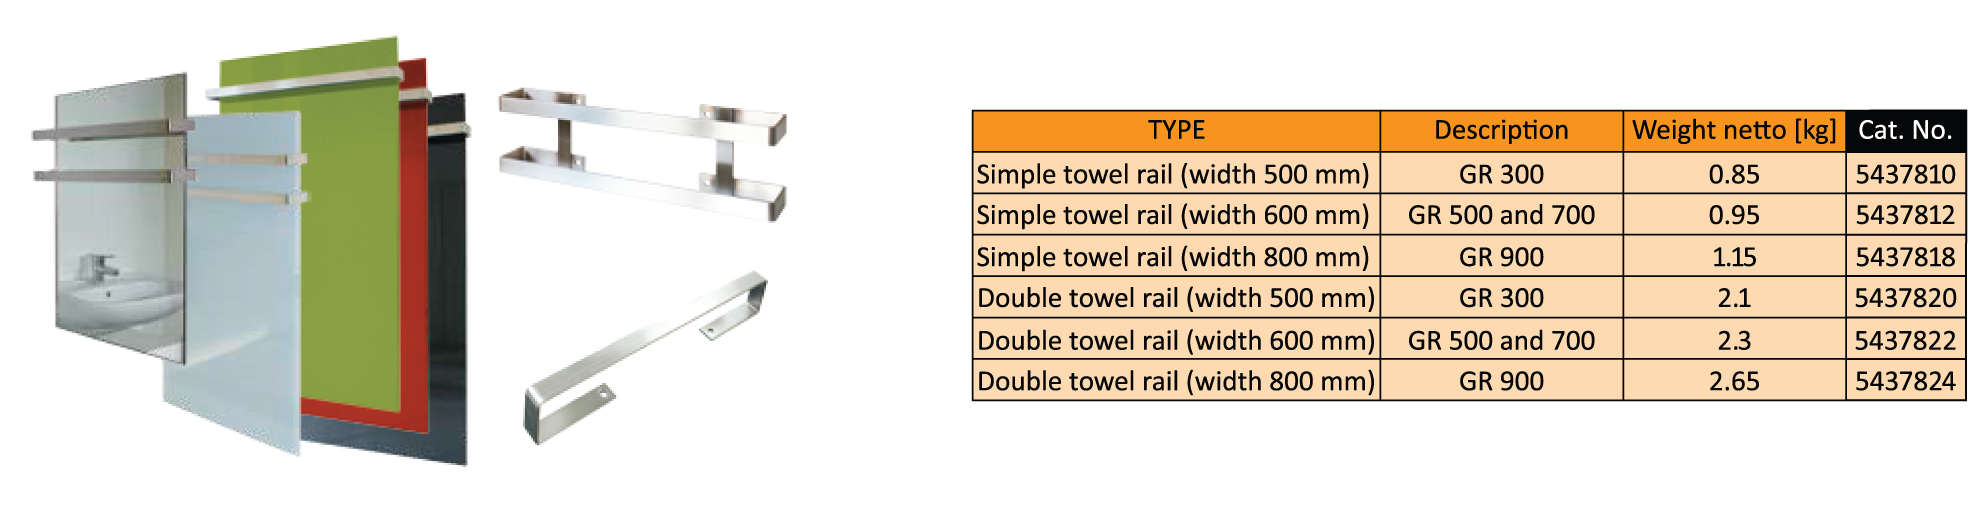 Fenix Towel Warmer Wiring Diagram The Rail Is In Shape Of A Rectangle With Dimensions 53090 Mm Distance Between Attachment Openings 260